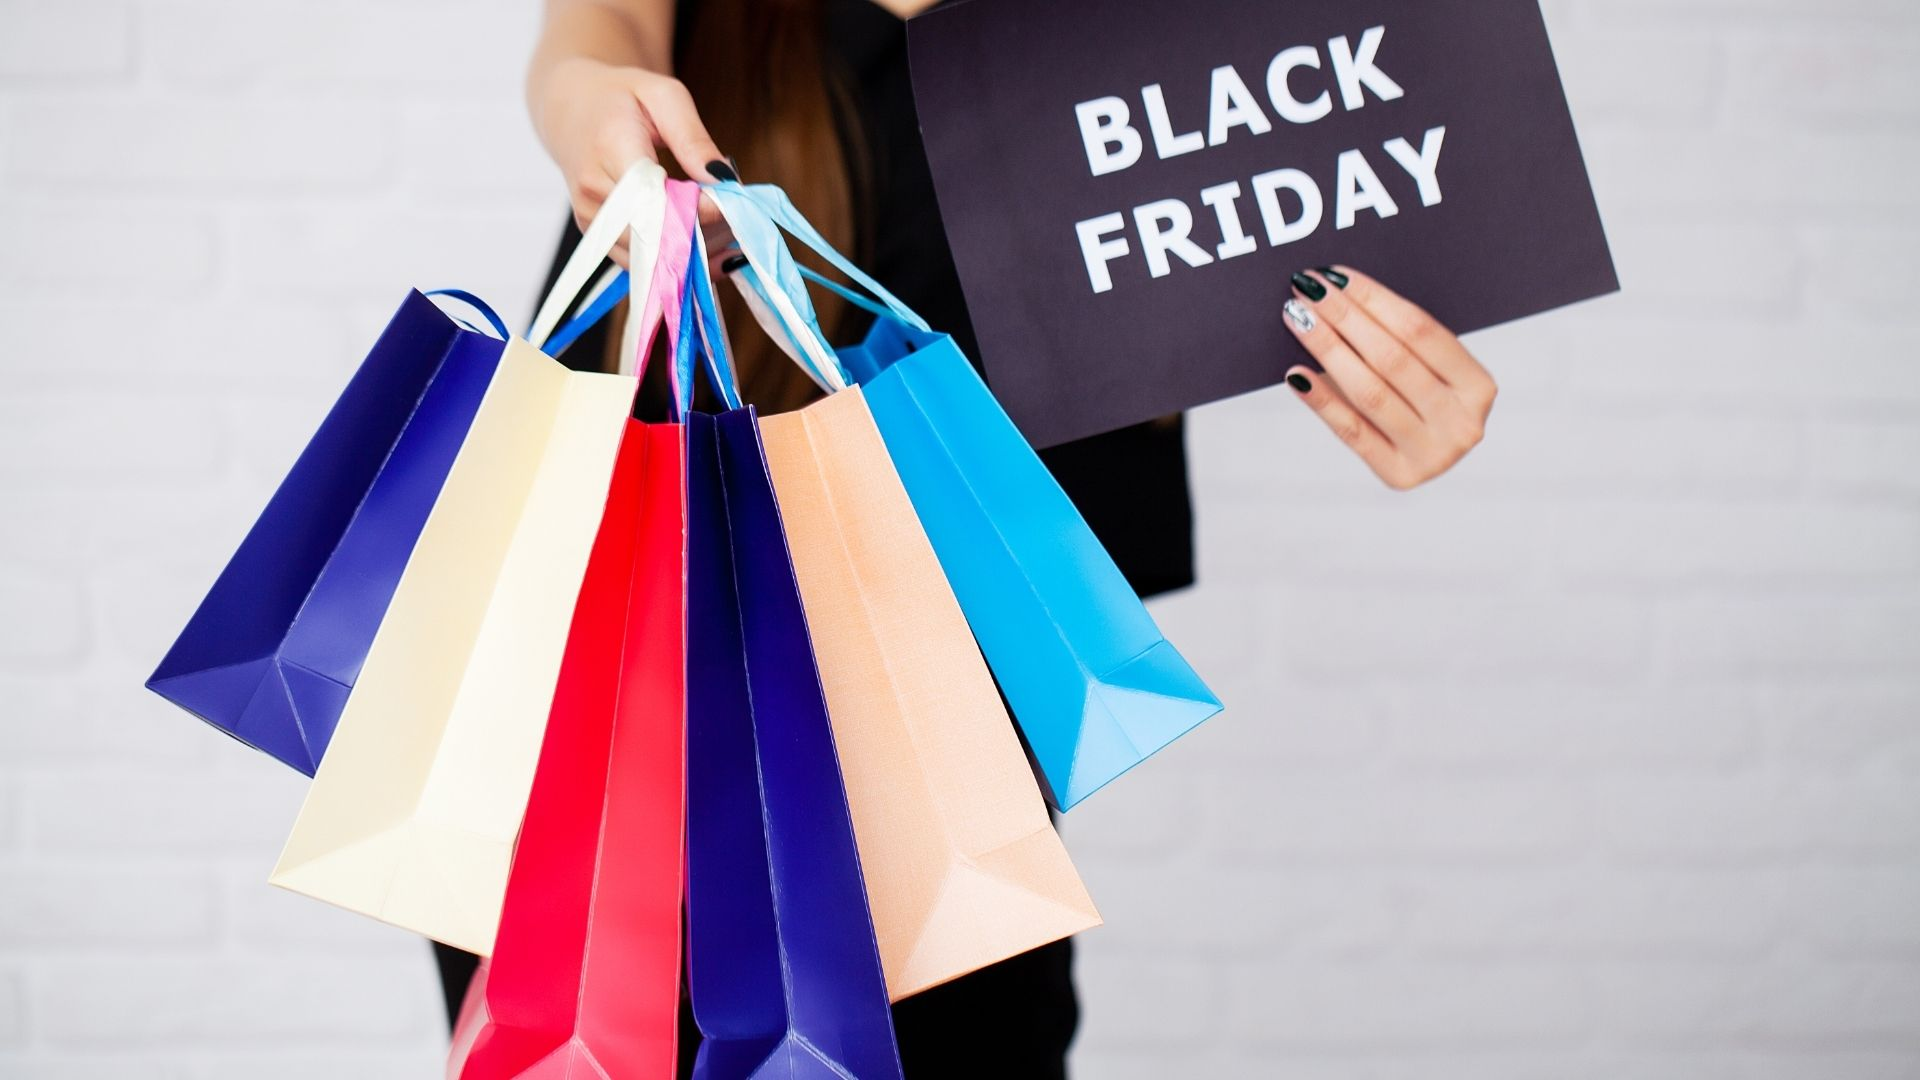 Black Friday - as a small retailer should i take part